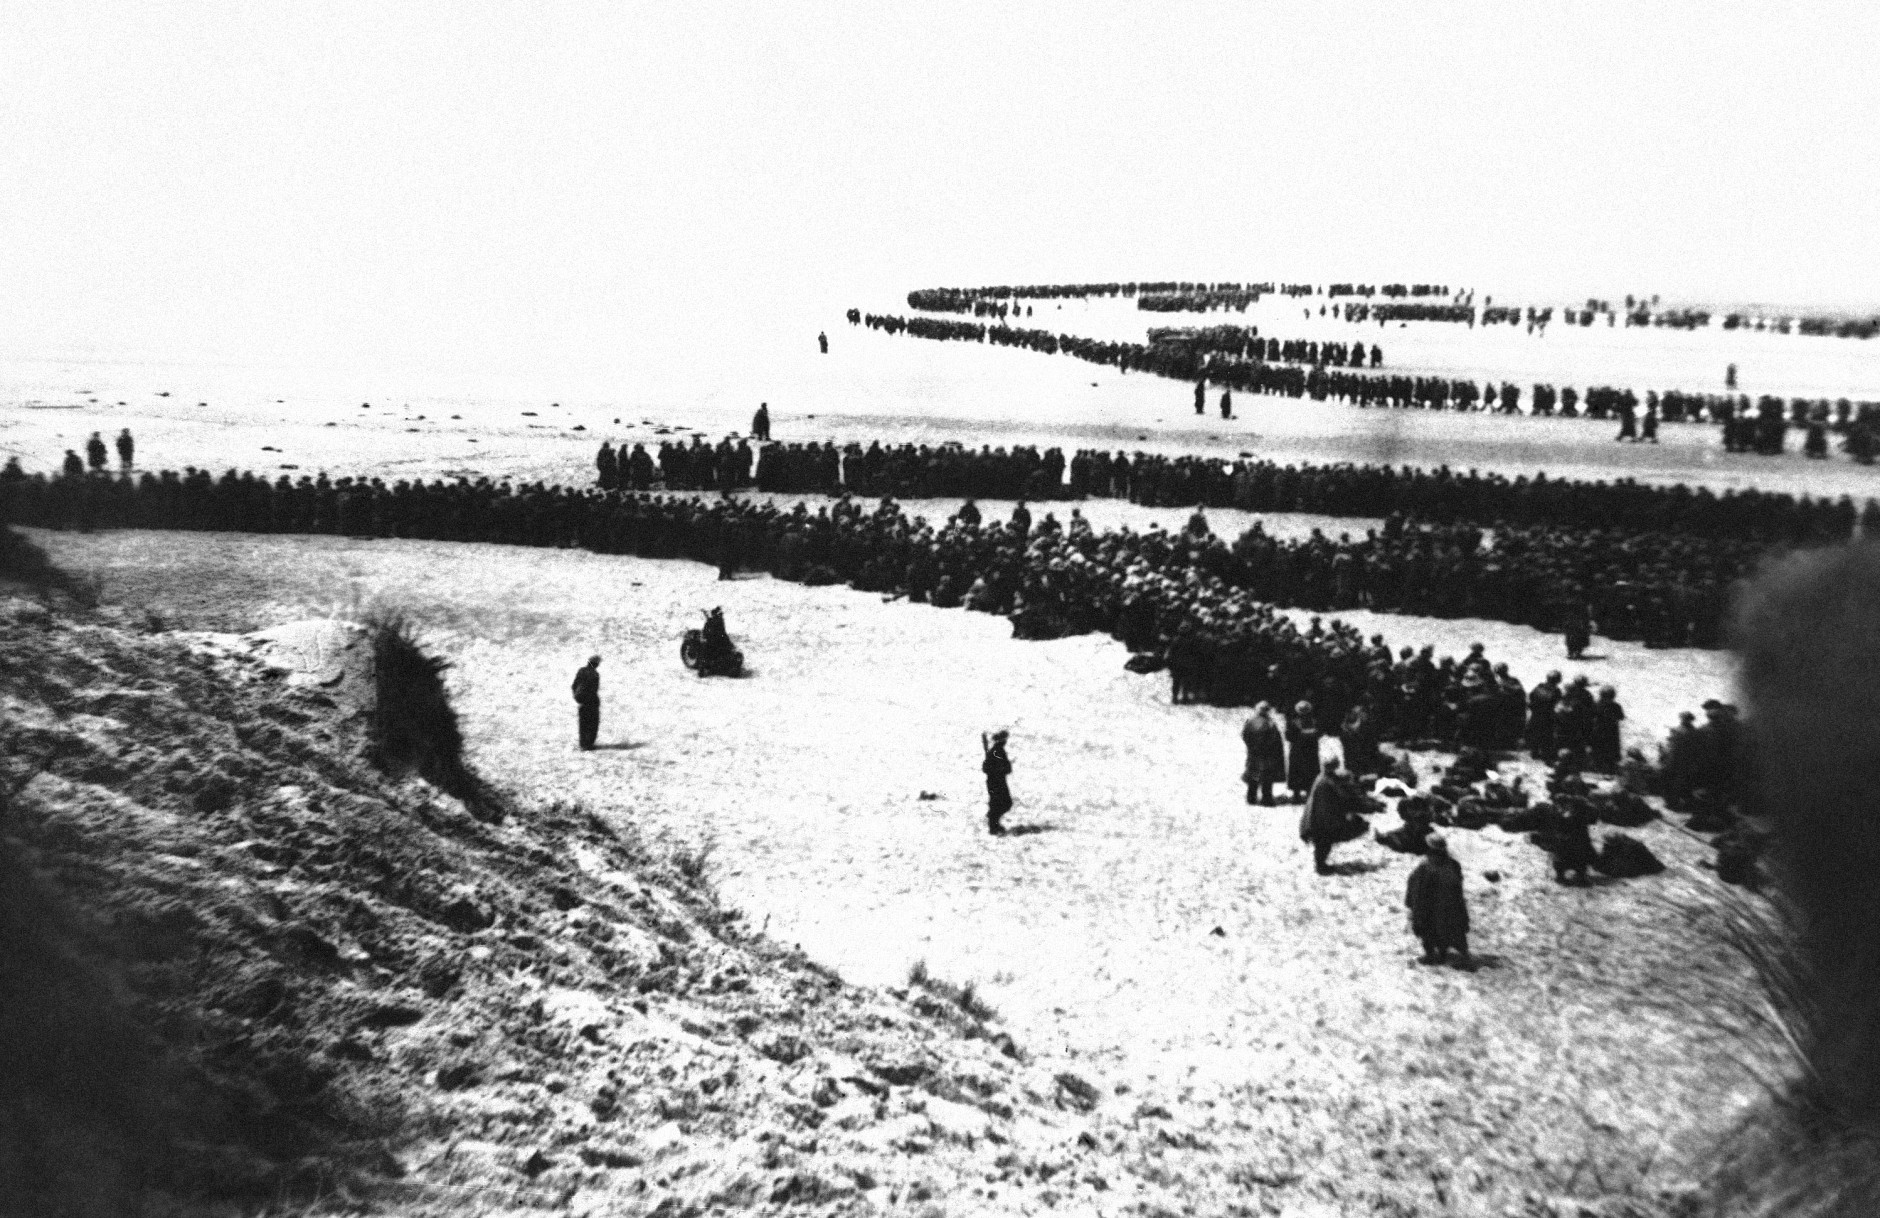 Thousands of British and French troops massed on the beach of Channel port in Dunkirk, France on June 4, 1940 awaiting ships to return them to England. British reports estimated 335,000 allied troops were evacuated from the German held pocket in Flanders in what was described as the greatest retreat in military history. (AP Photo)